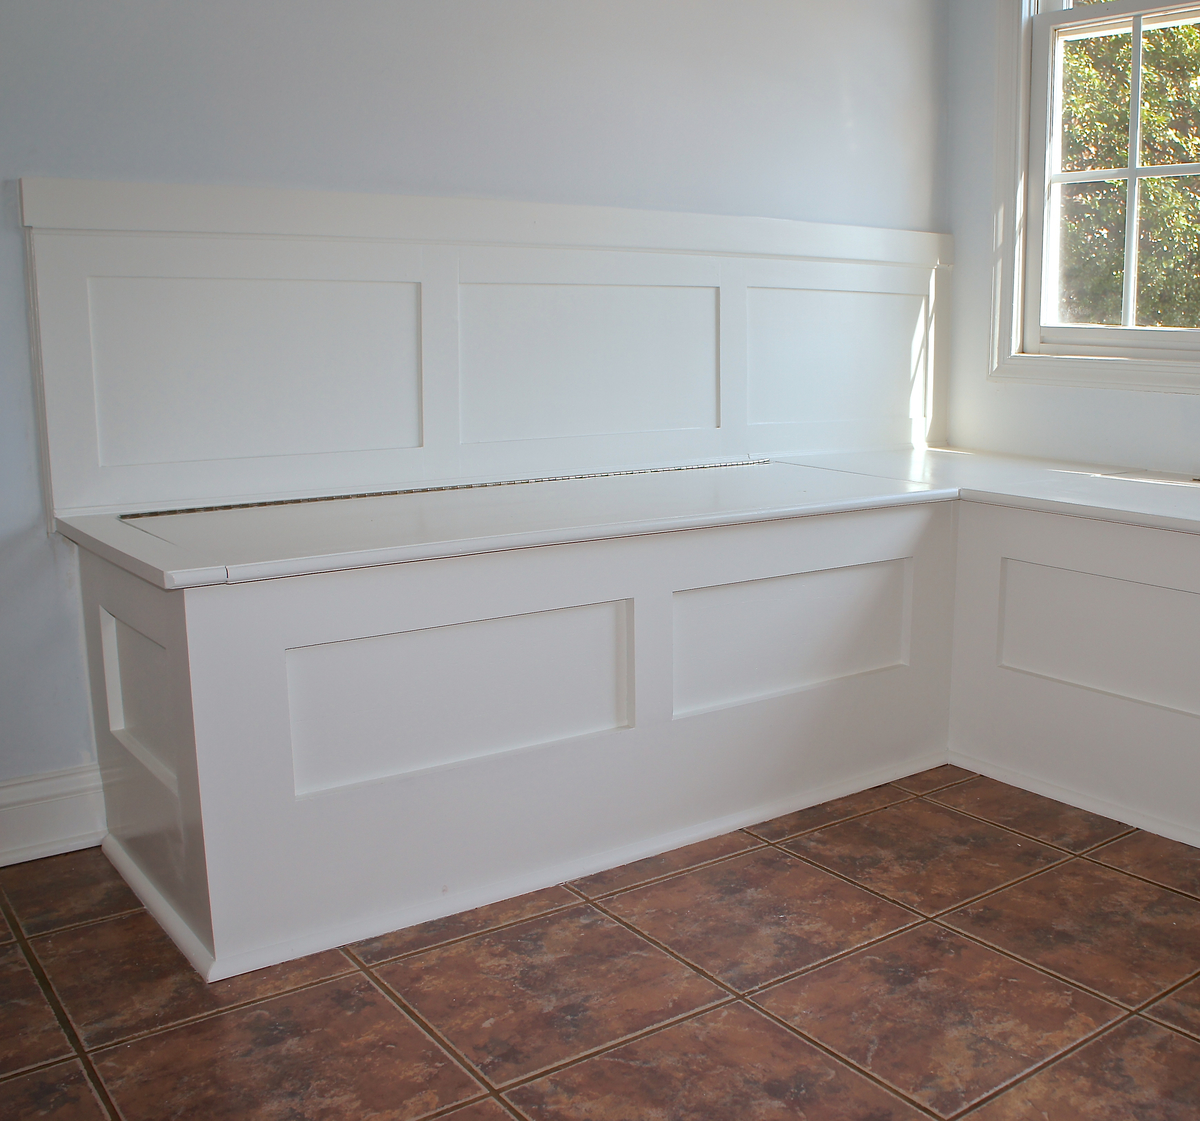 Ana White Built In Storage Bench Diy Projects